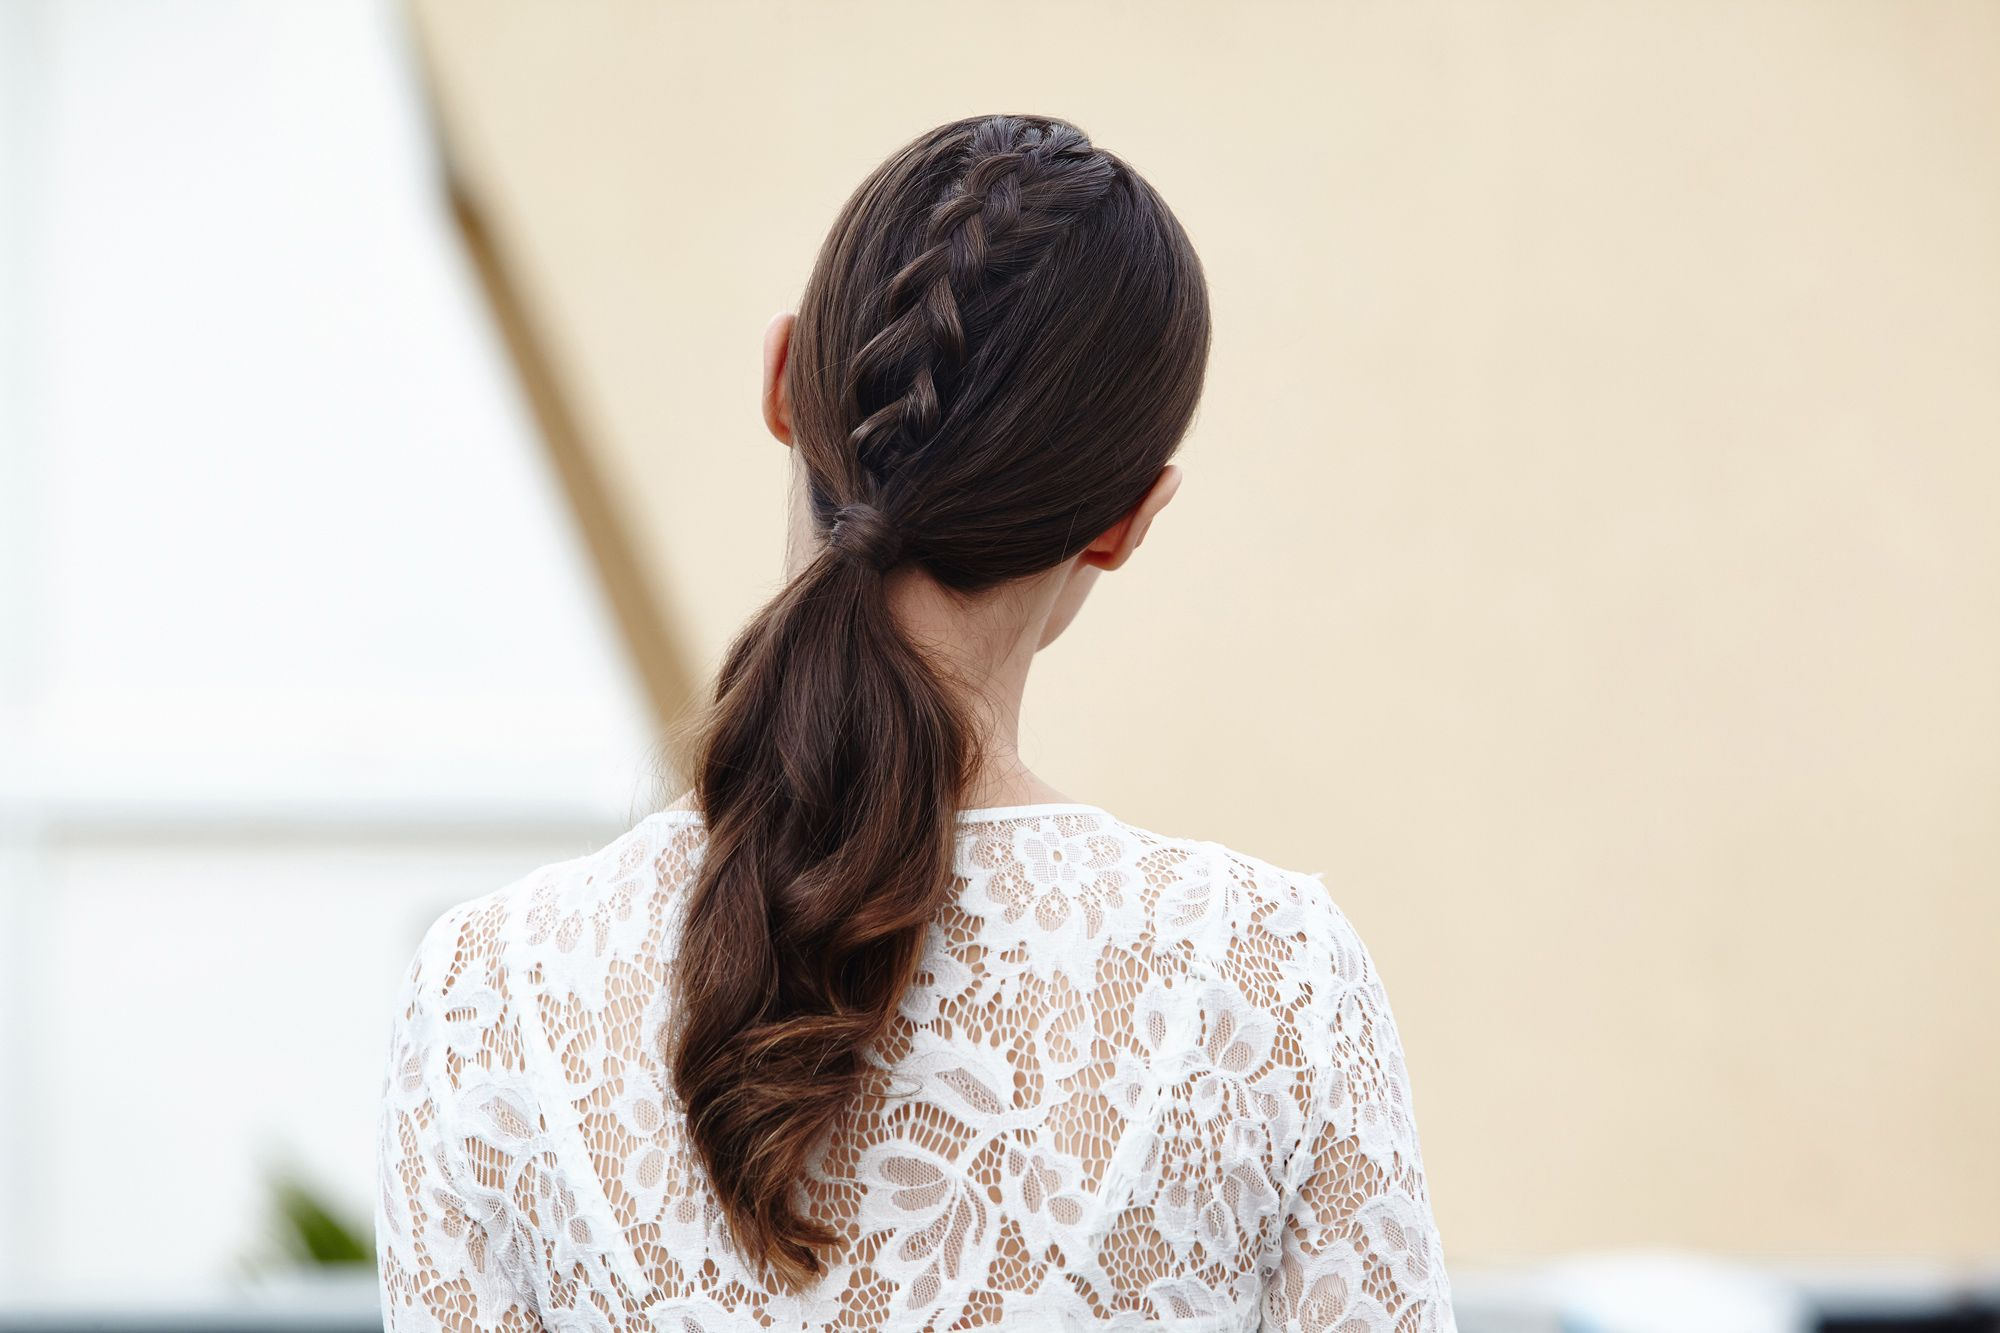 brunette model with a unicorn braid ponytail wearing a white lace top